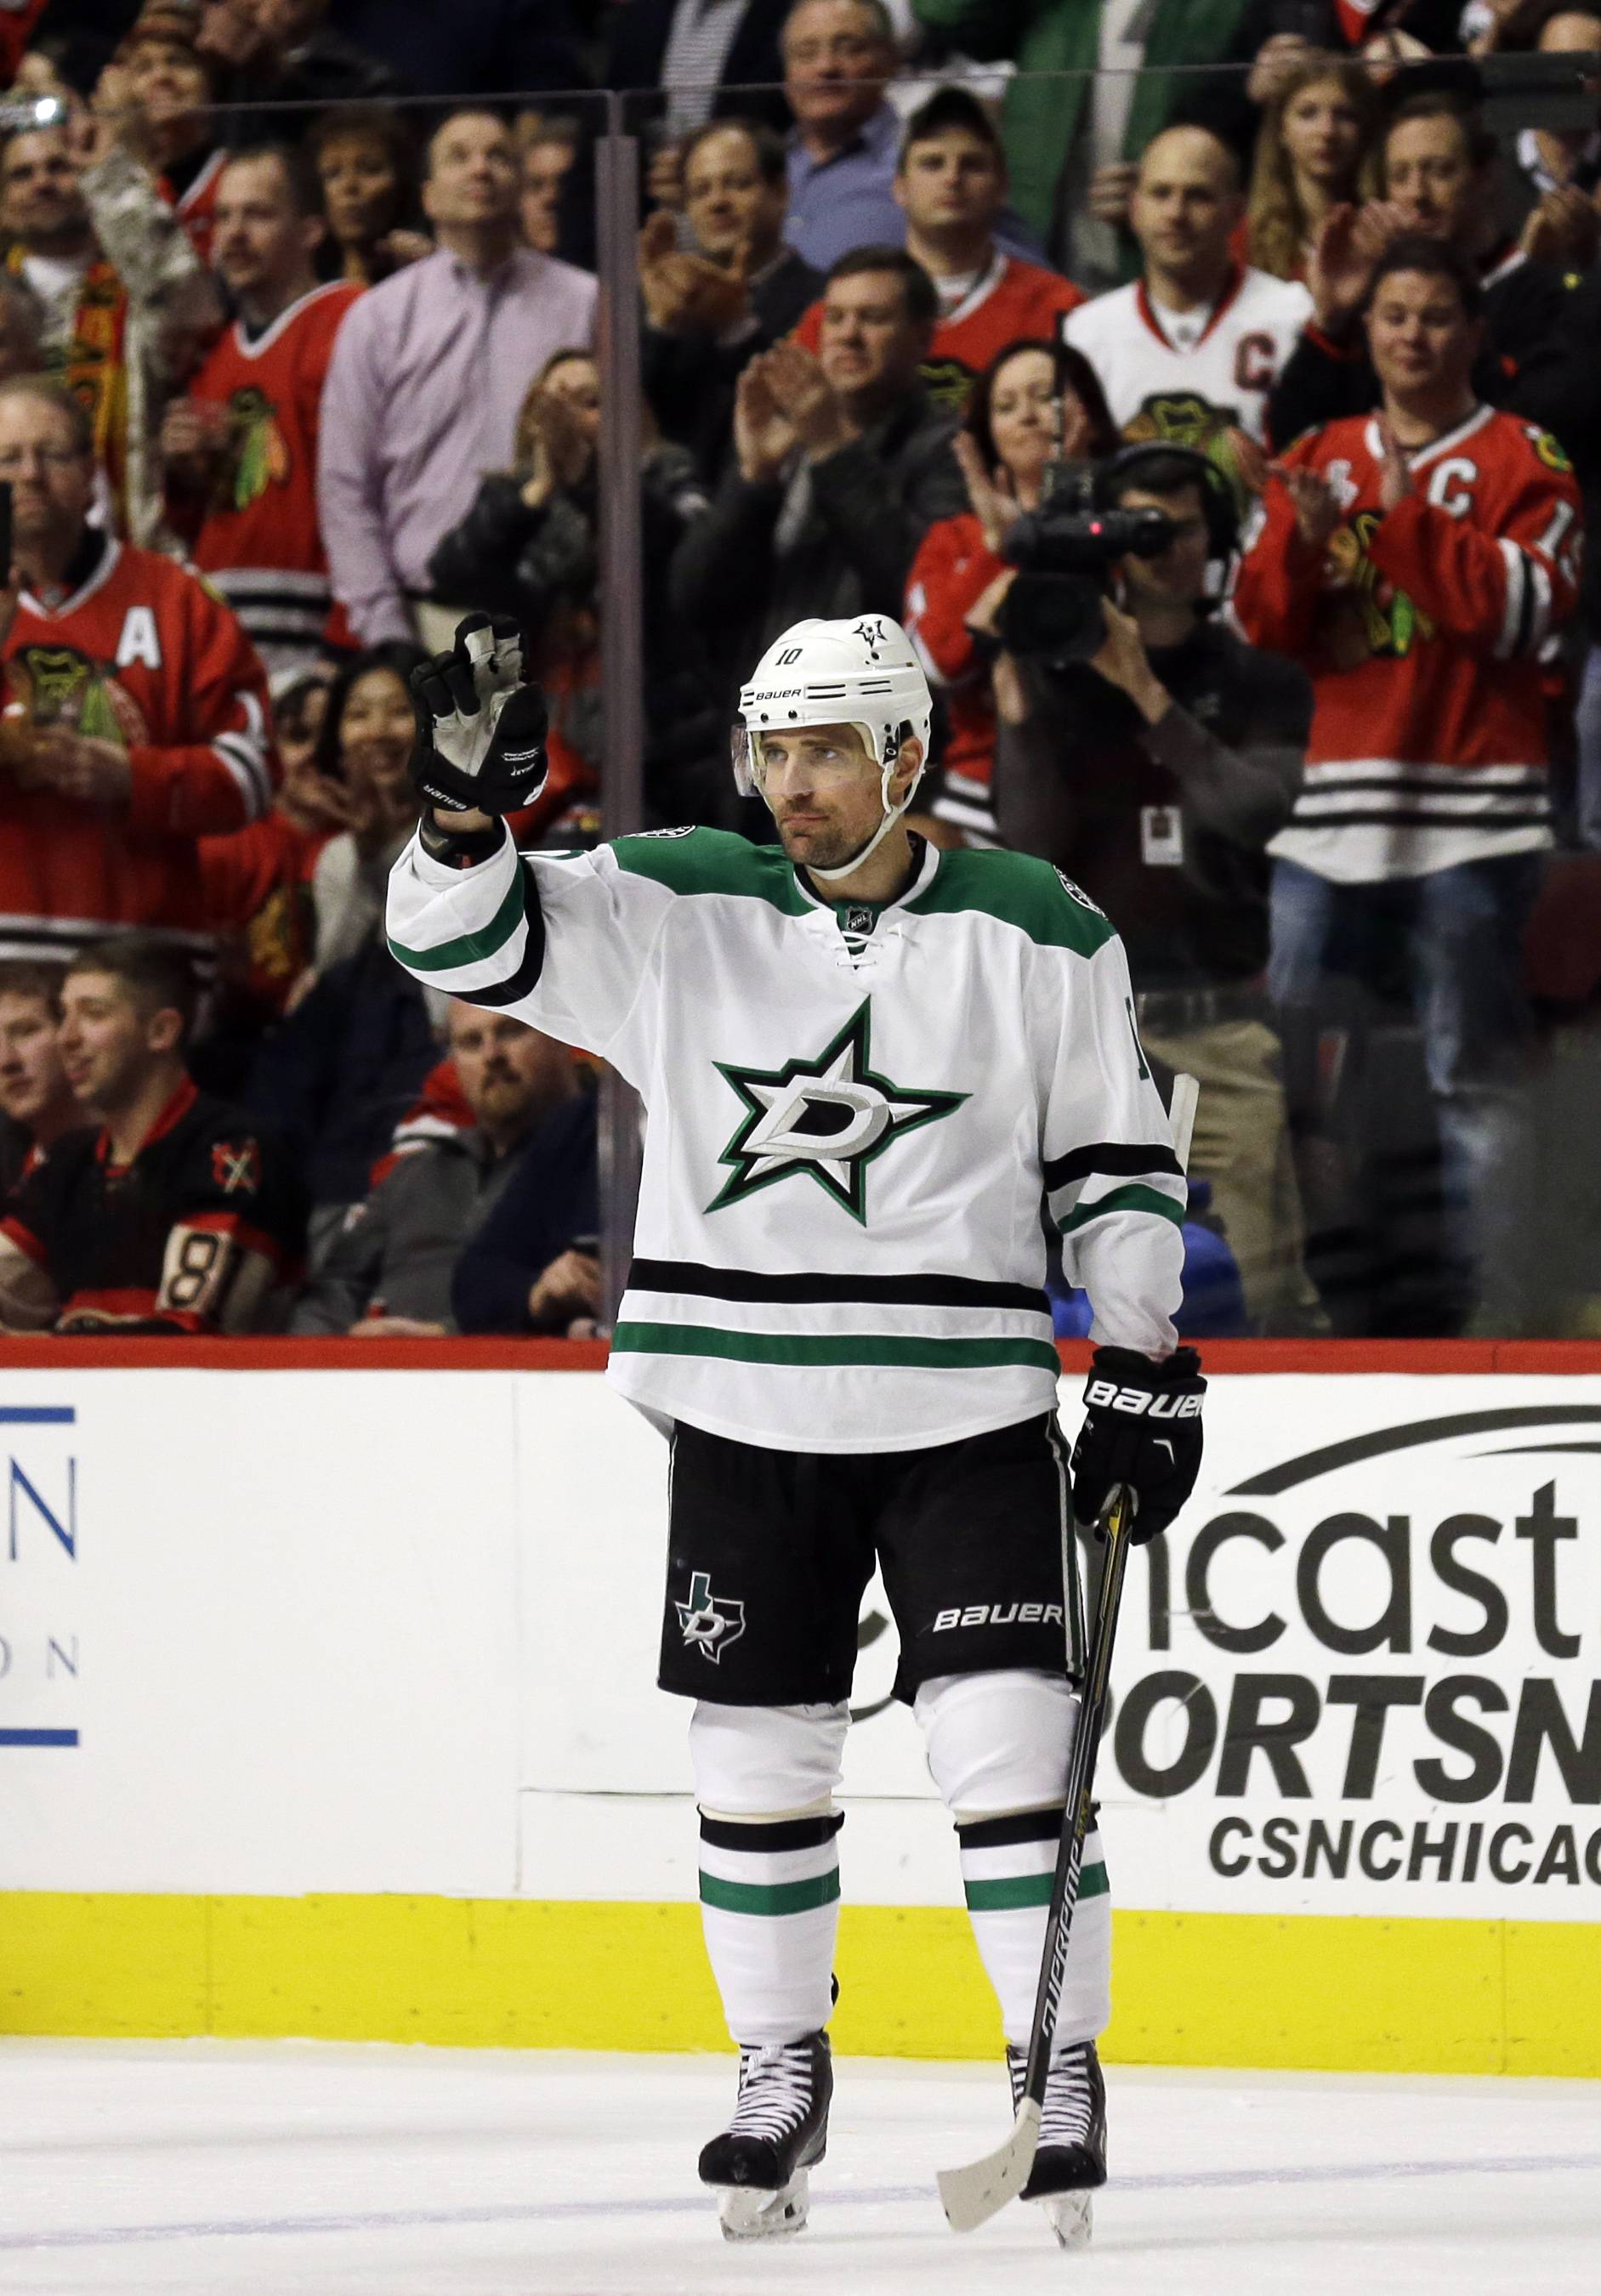 Dallas Stars left wing Patrick Sharp acknowledges cheering Blackhawks fans Thursday at United Center after a video tribute from his former team was shown in the first period.